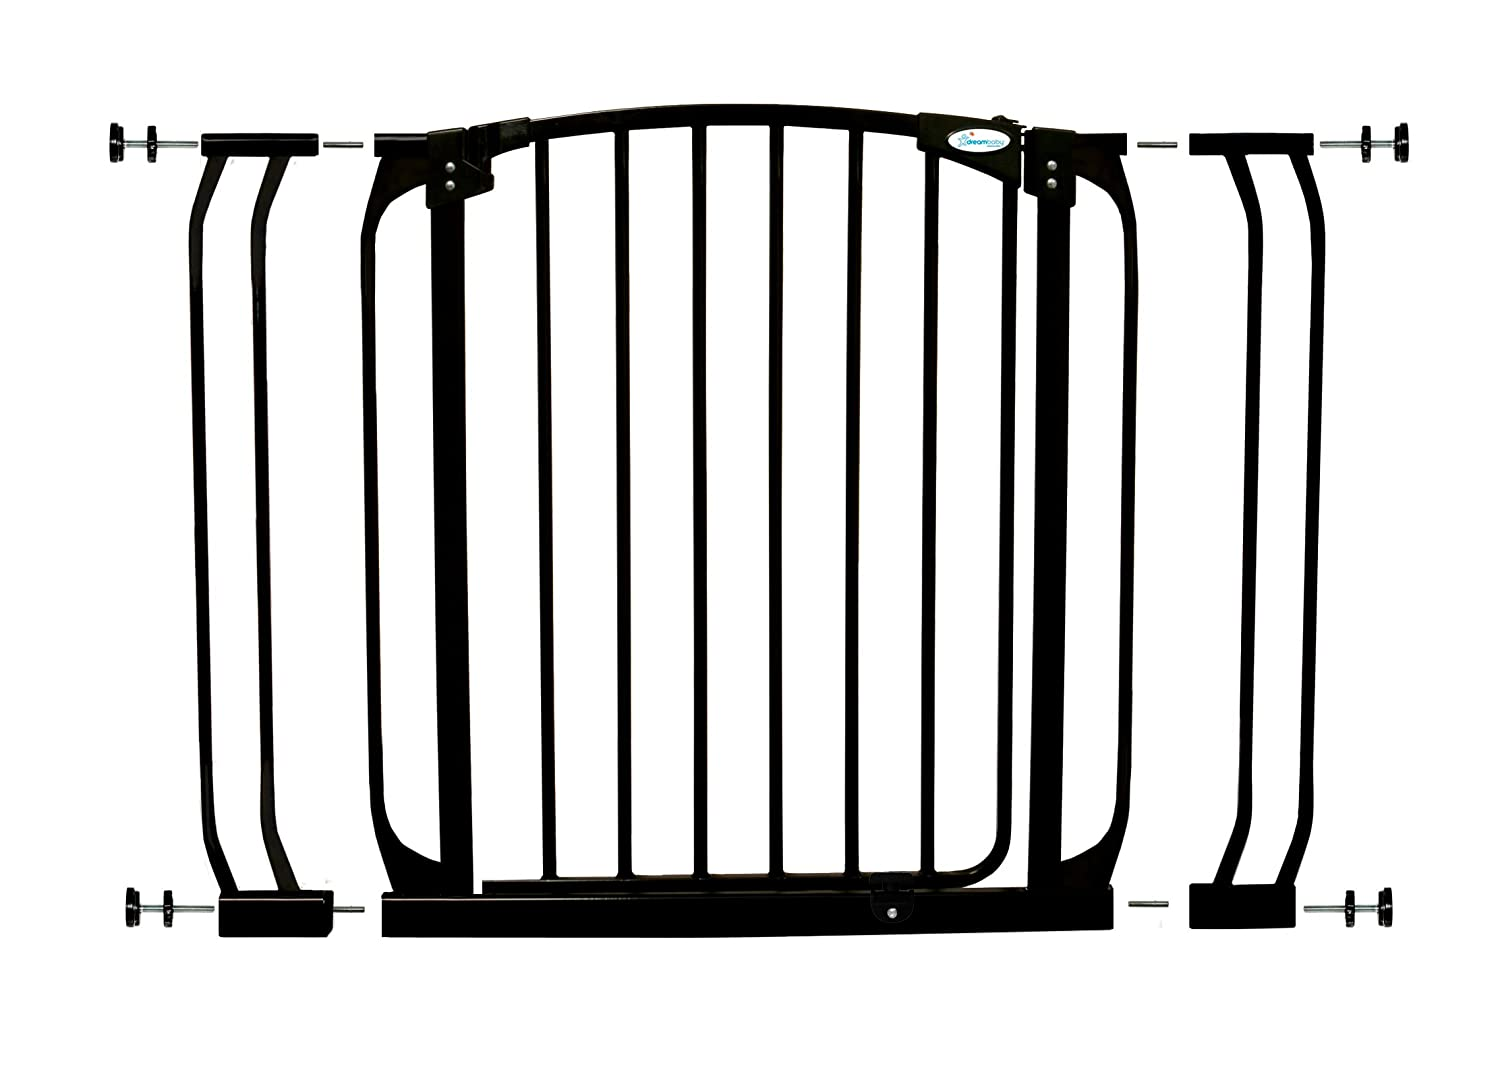 Dreambaby Chelsea Safety Gate Set - 1 gate + 2 extensions (fits 71cm-98cm) Black Dreambaby® F778B